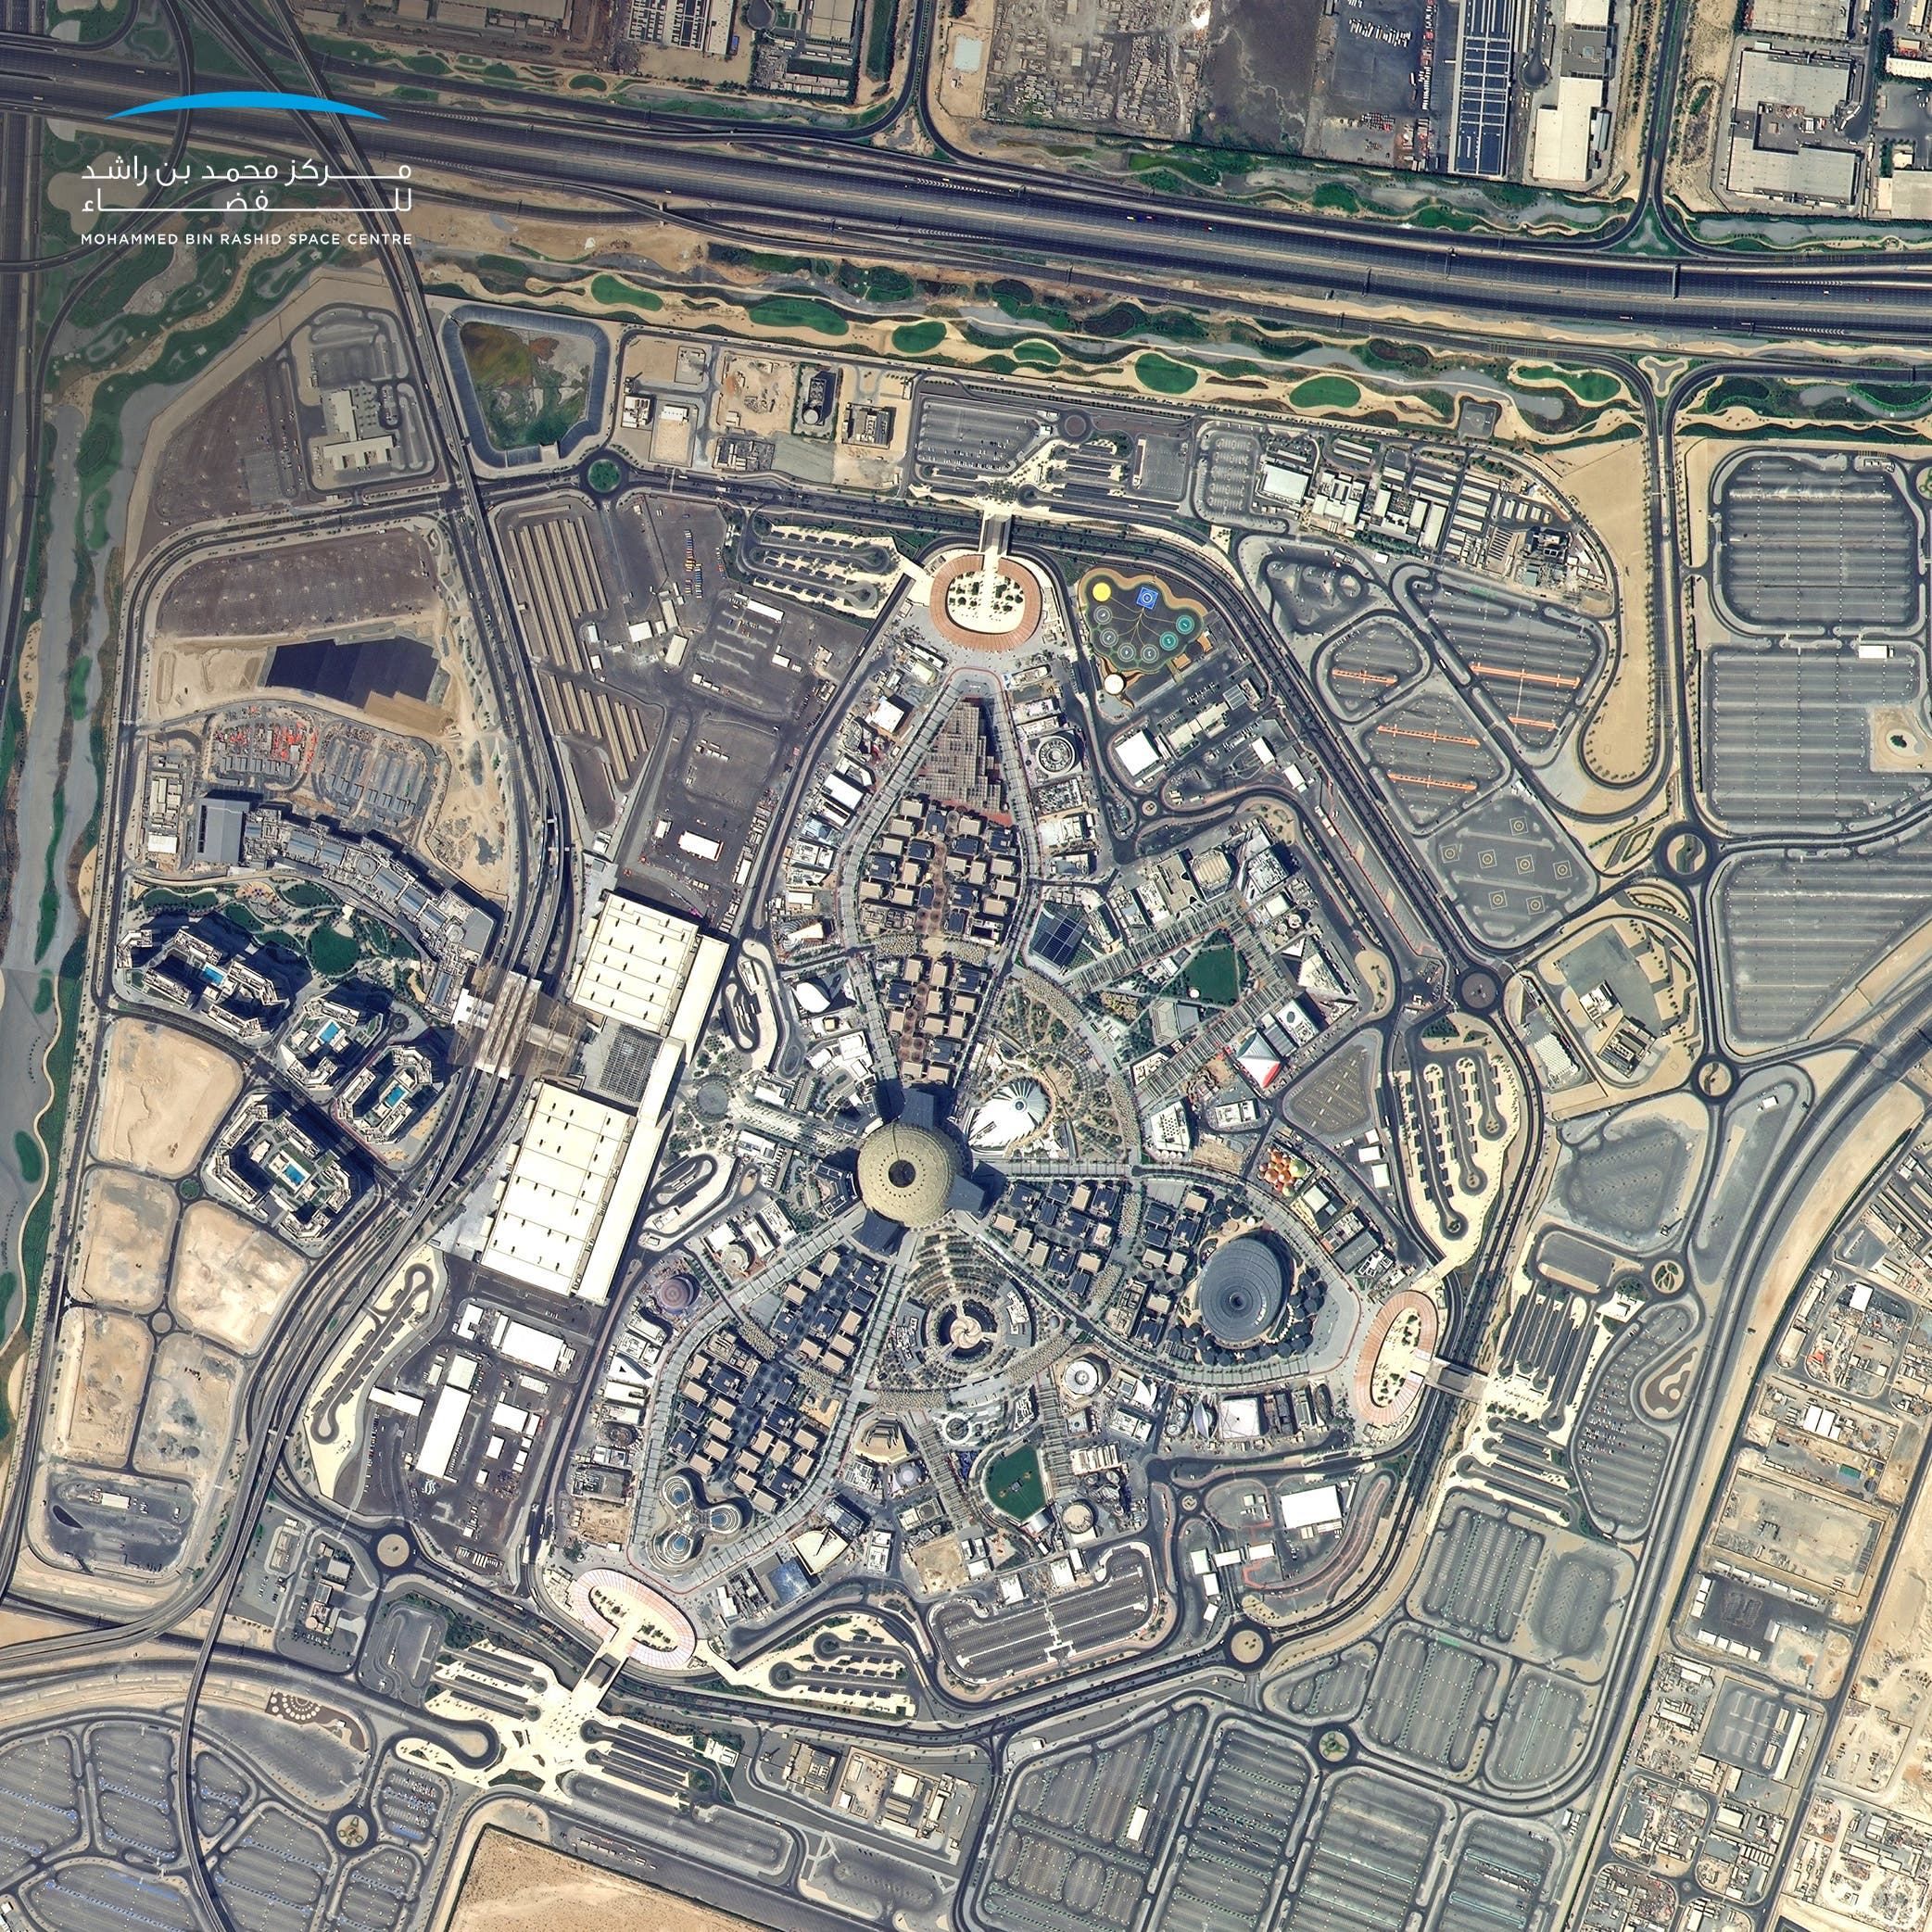 One month to go for the opening of Expo 2020 Dubai. This photo, taken by KhalifaSat from space, shows the site of the global cultural event that will bring together 191 countries in the UAE. (Supplied)